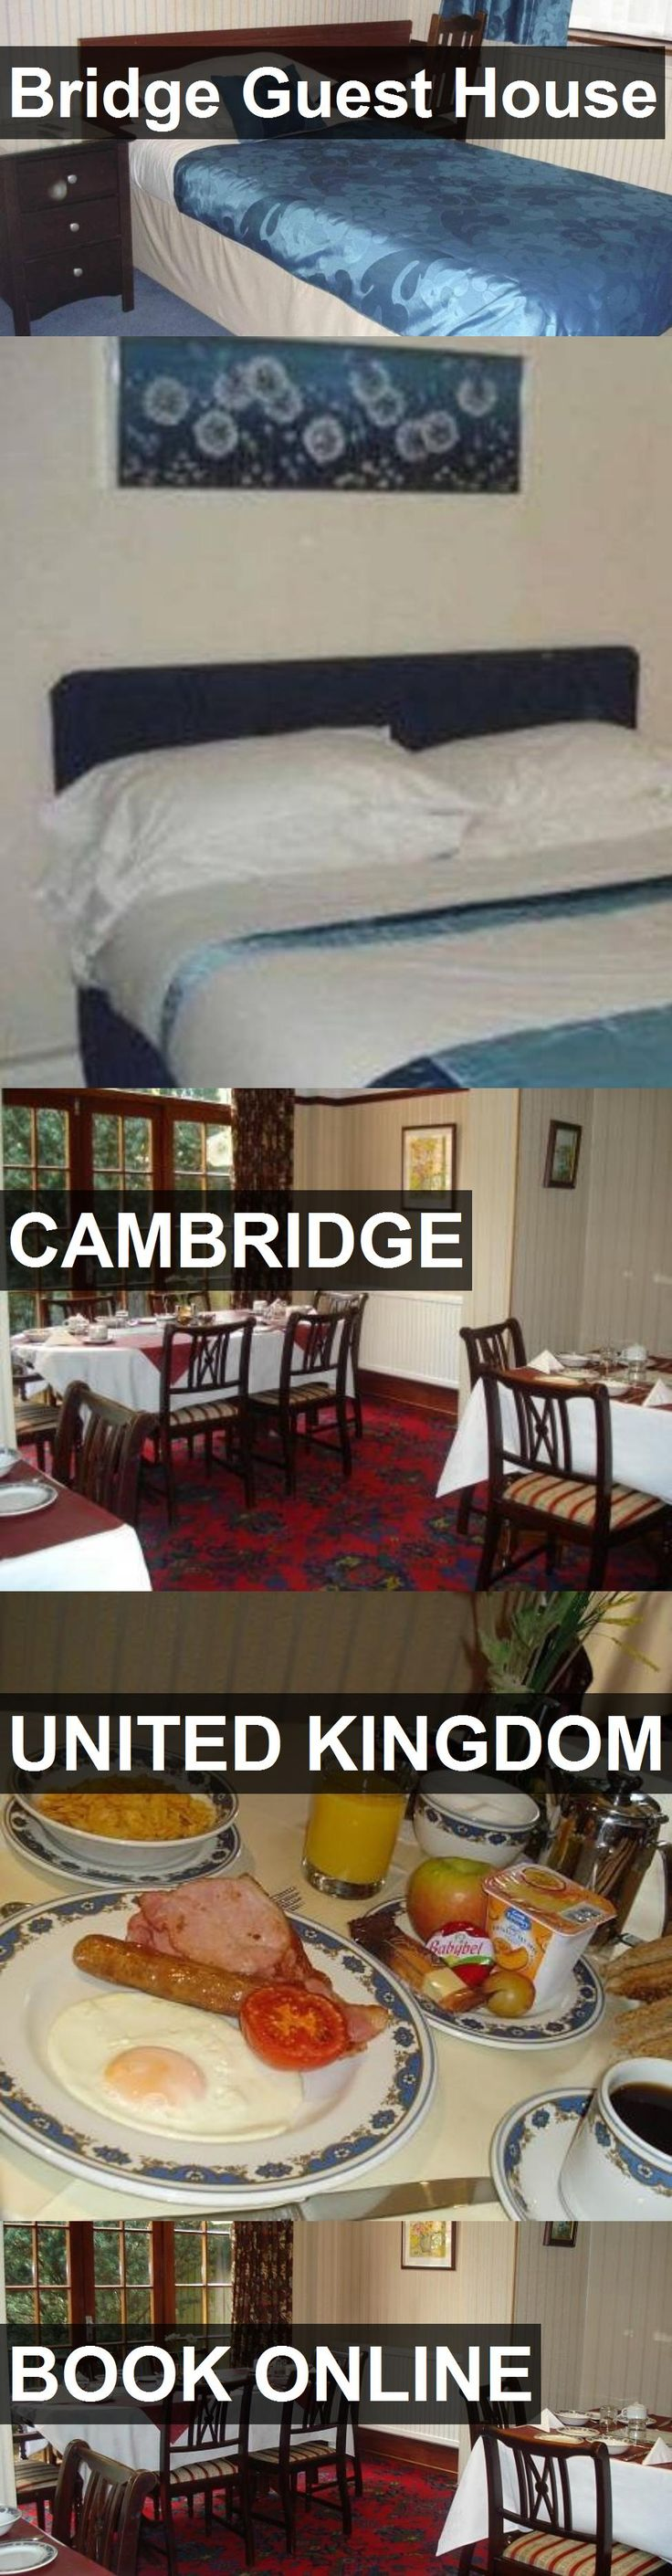 Bridge Guest House in Cambridge, United Kingdom. For more information, photos, reviews and best prices please follow the link. #UnitedKingdom #Cambridge #travel #vacation #guesthouse